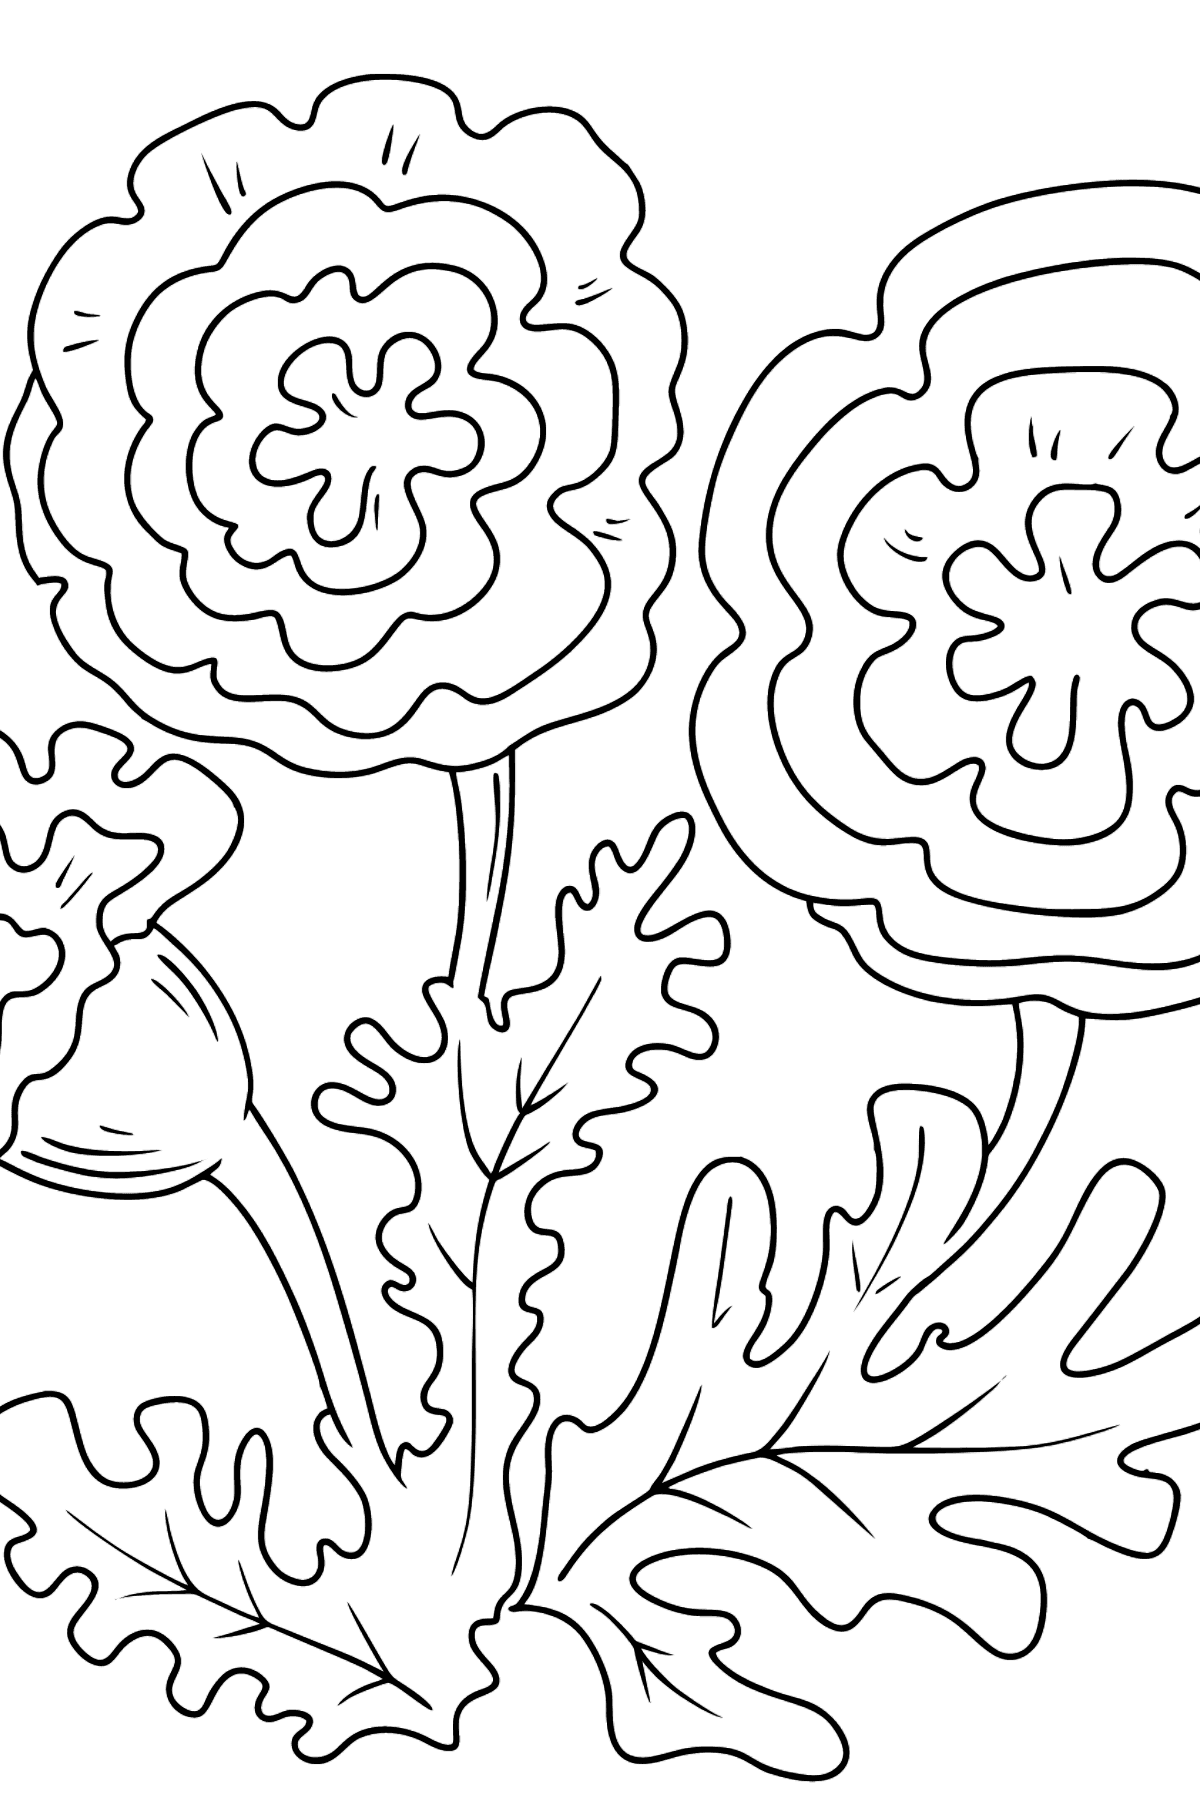 Coloring Page - Autumn flowers - Coloring Pages for Kids